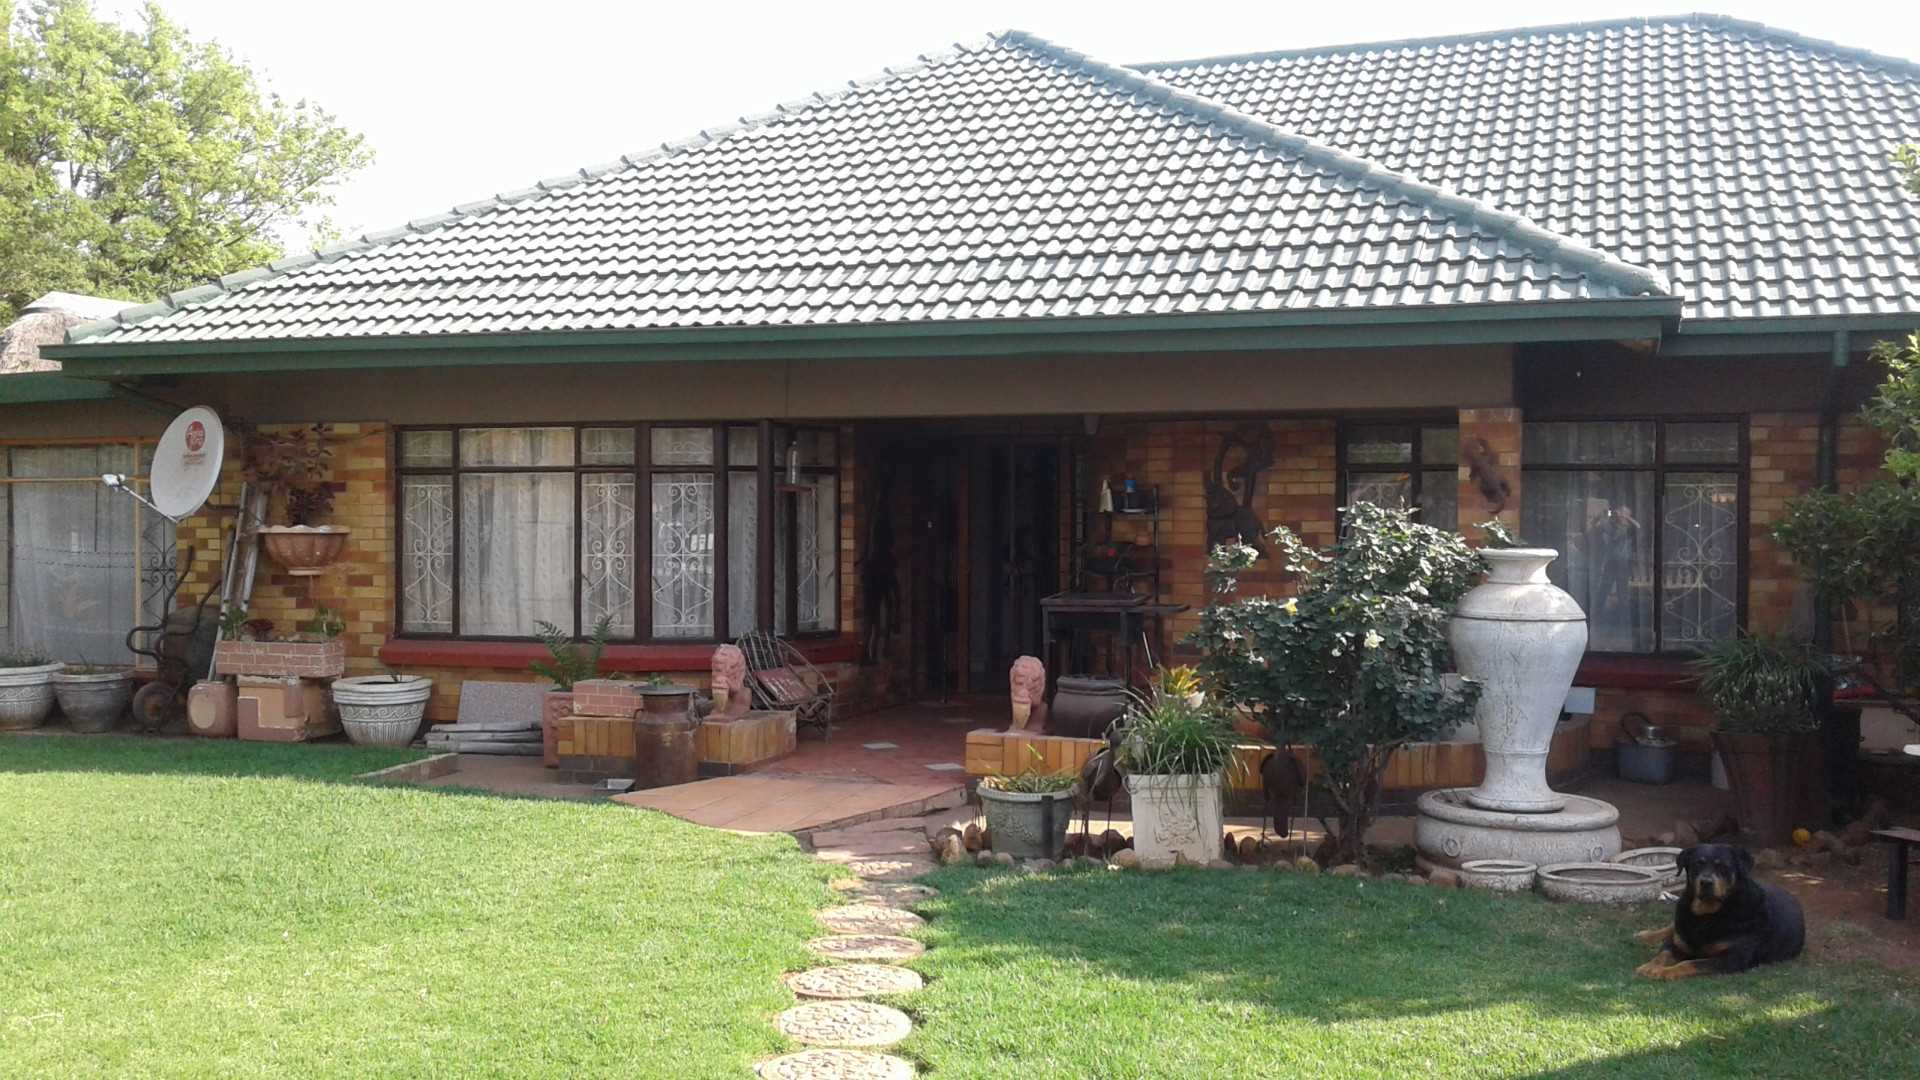 Vanderbijlpark SW1. Family home with a full granny flat